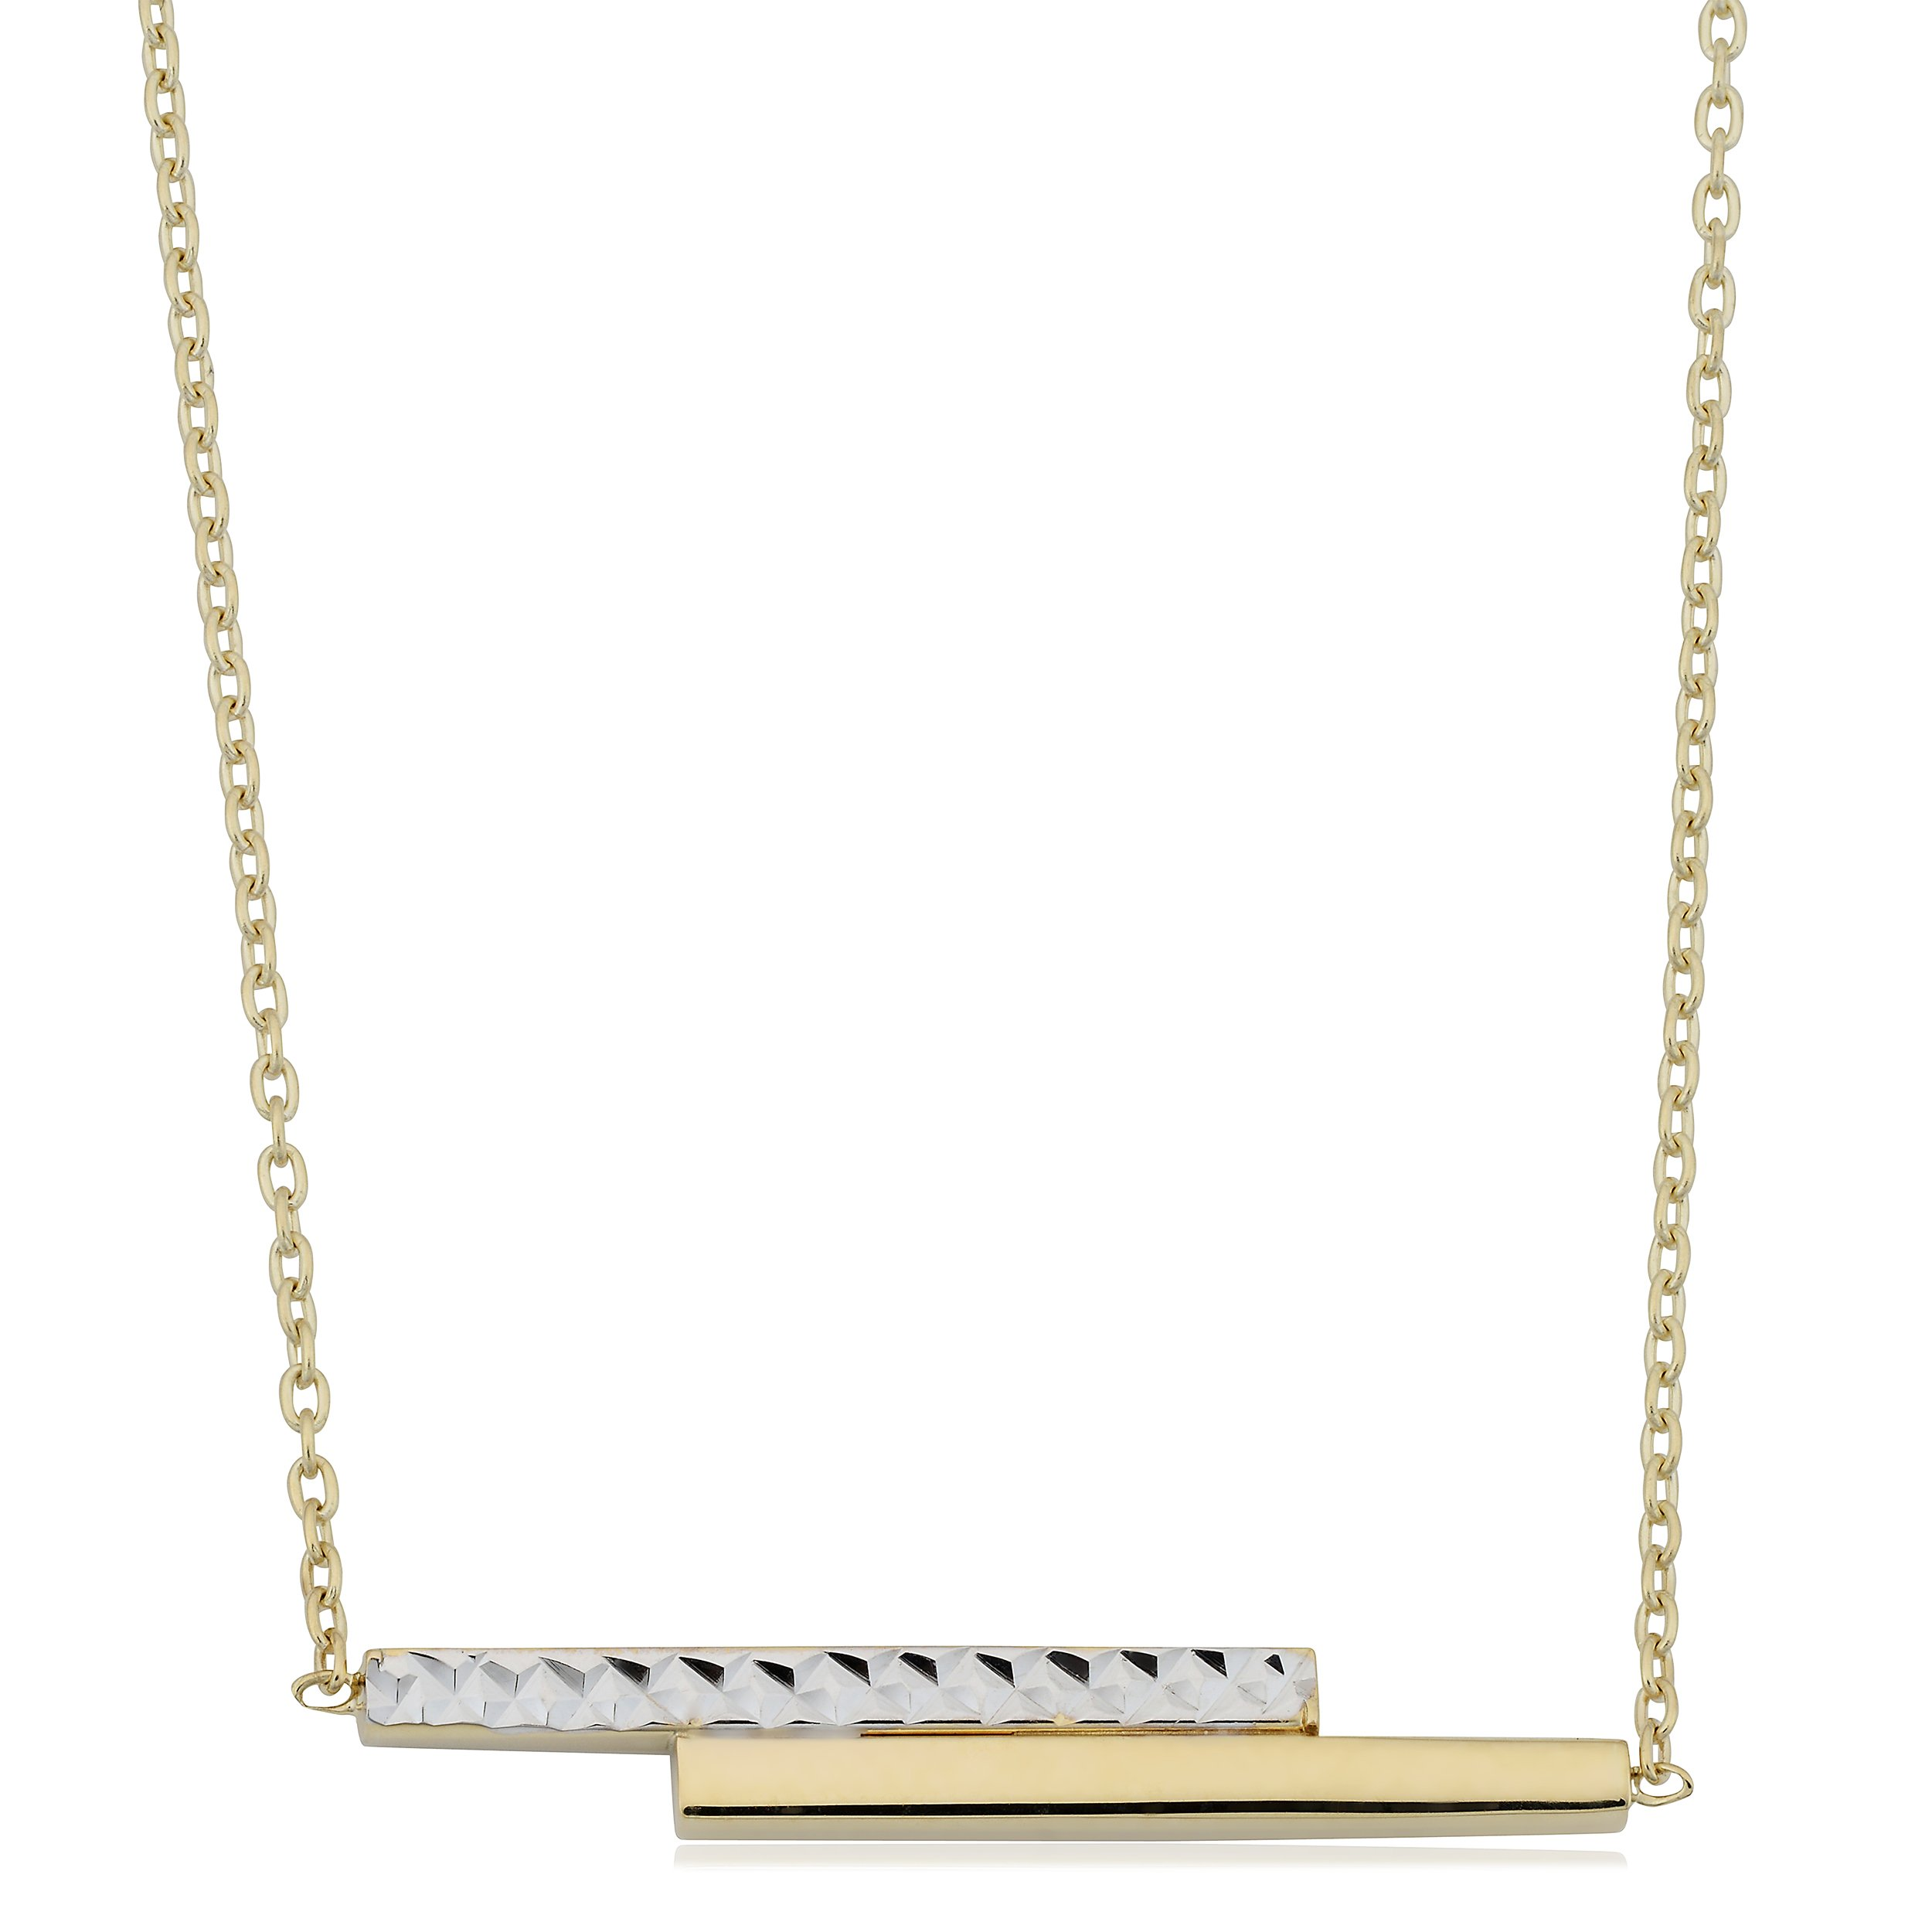 10k Two-Tone Gold Double Bar On Adjustable Length Cable Chain Necklace (up to 18'')